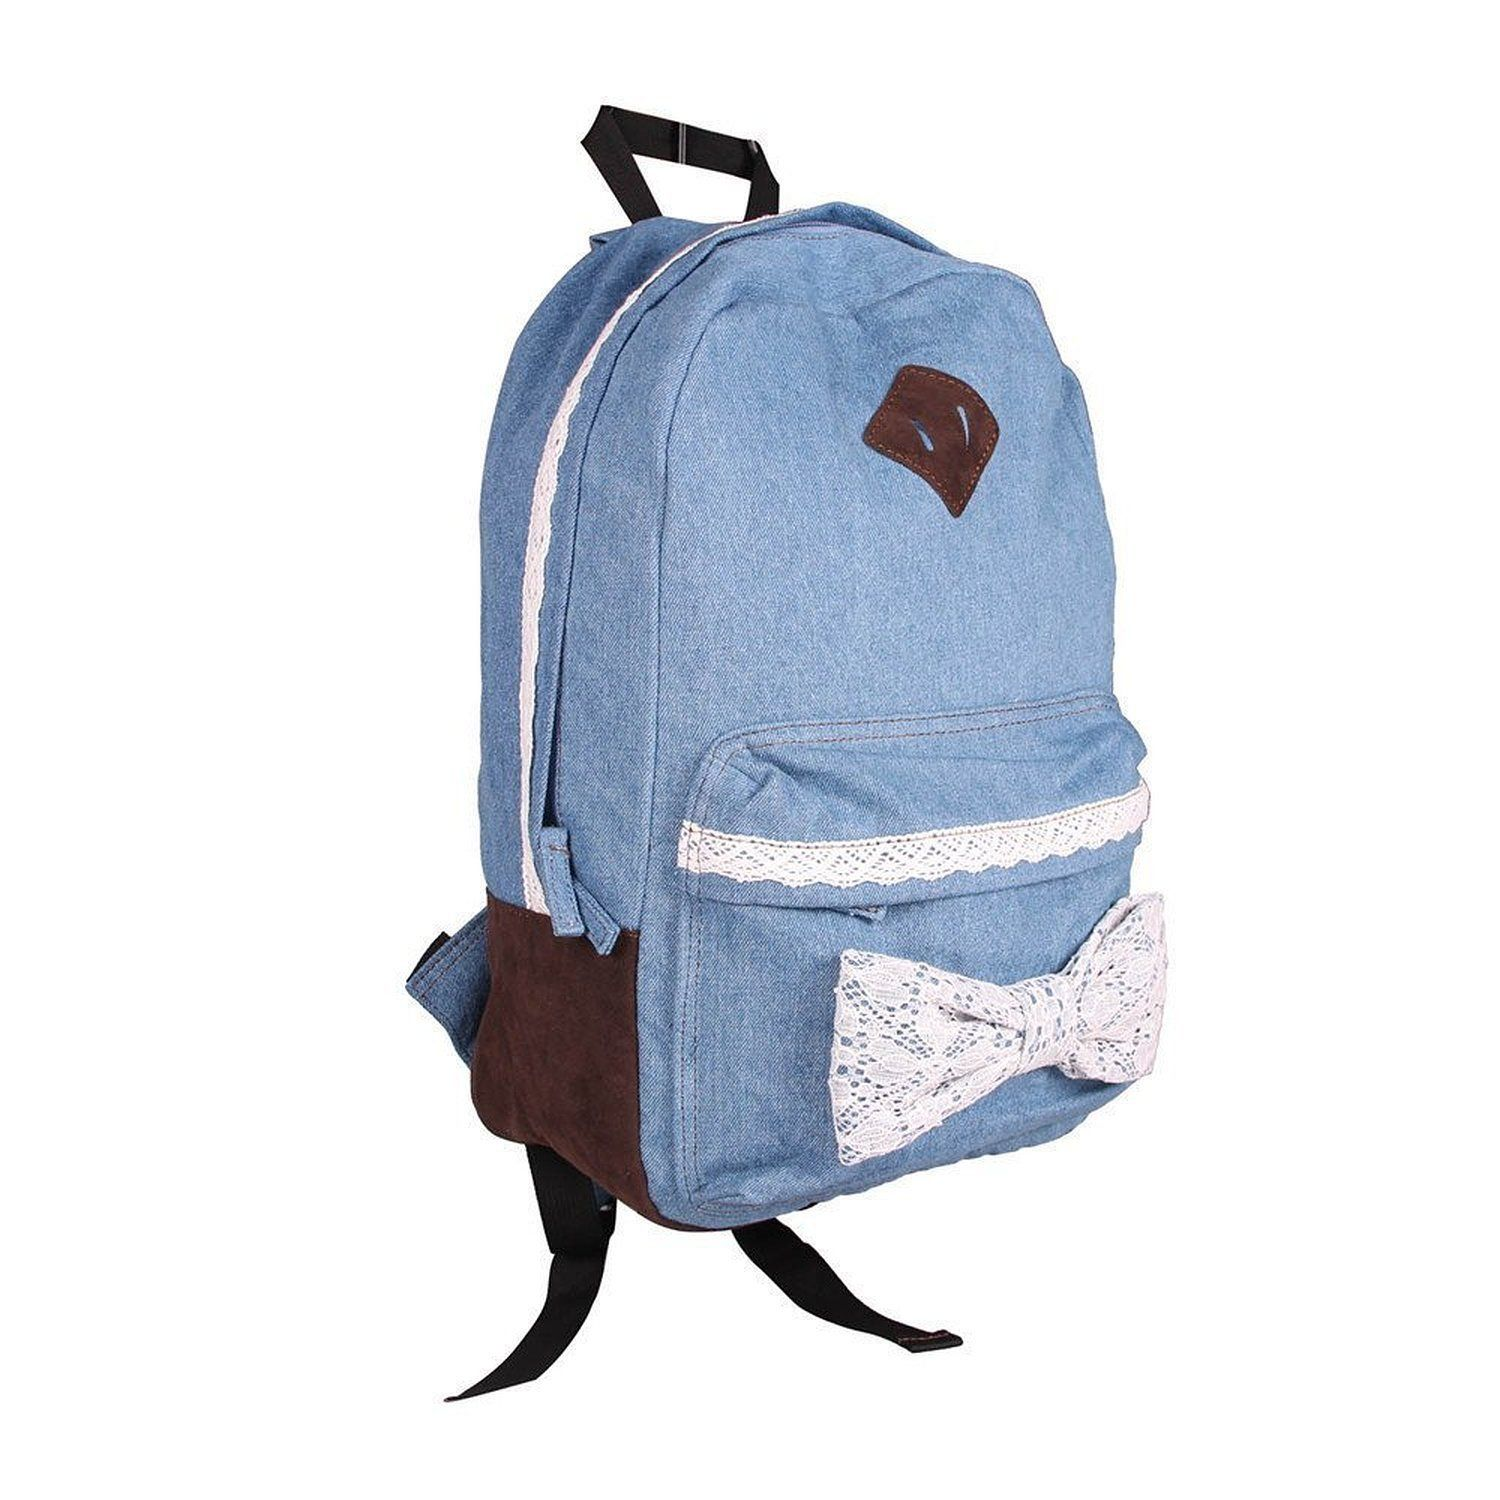 eforstore cute bow vintage lace jeans backpack 23 15 bags